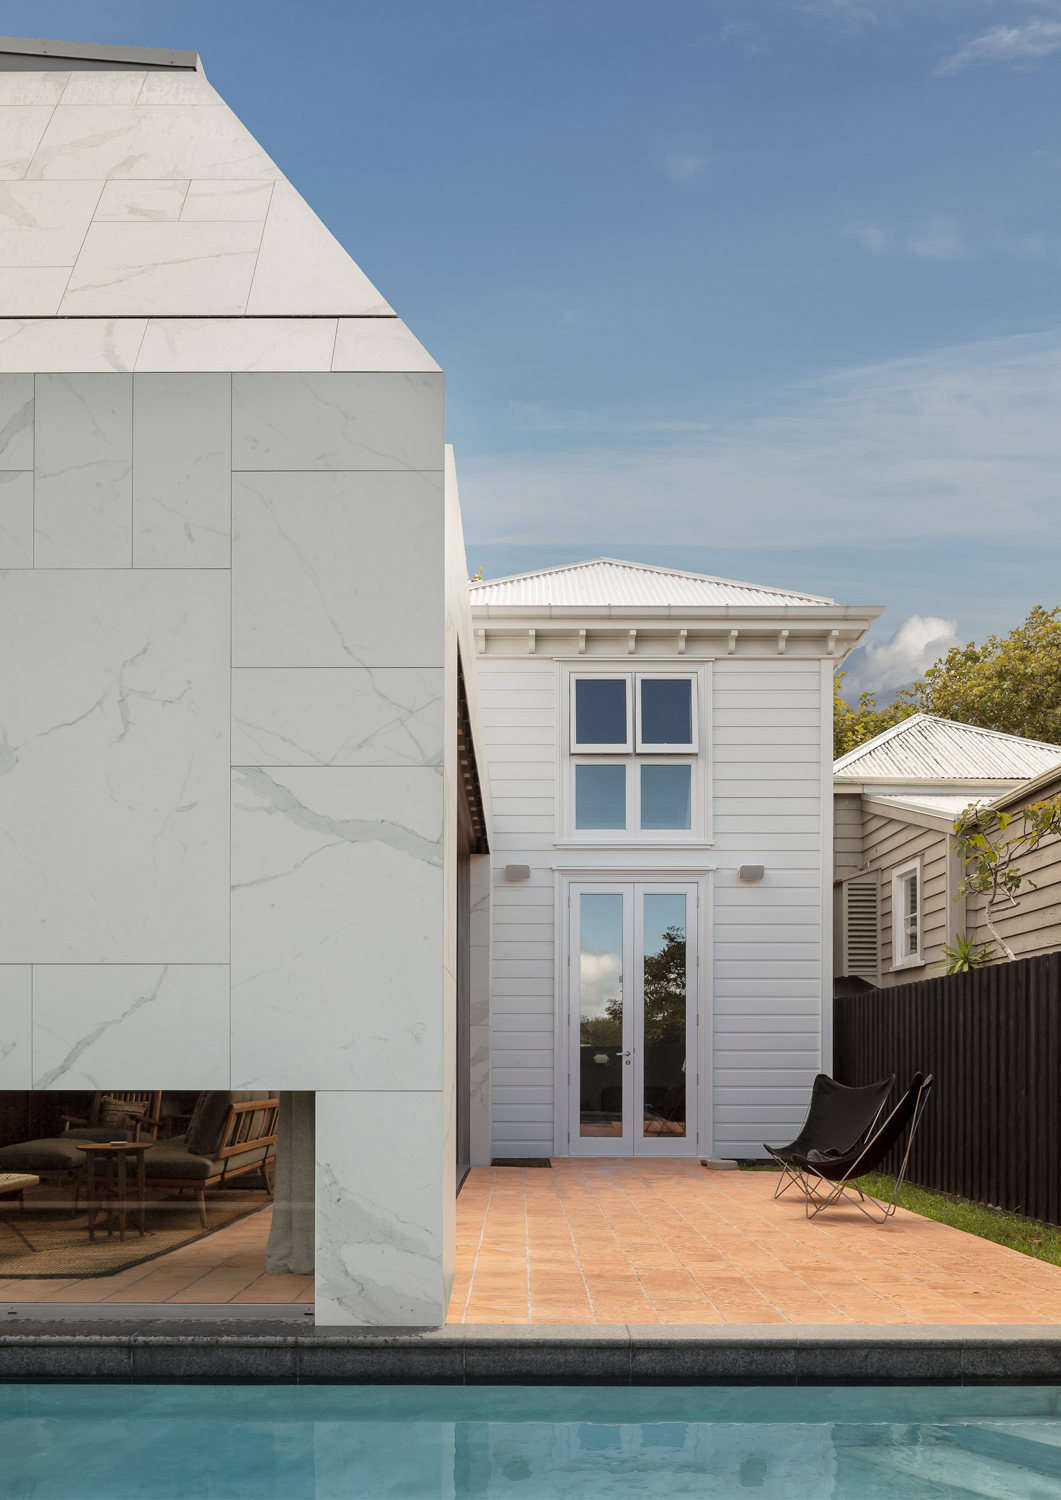 The exterior of the house shows where the original build, in white-painted wood cladding, meets the new extension, finished in broad white marble tiles. The pool is a new addition and surrounding exterior landscape, both in front and back, is by landscape designer Jared Lockhart.